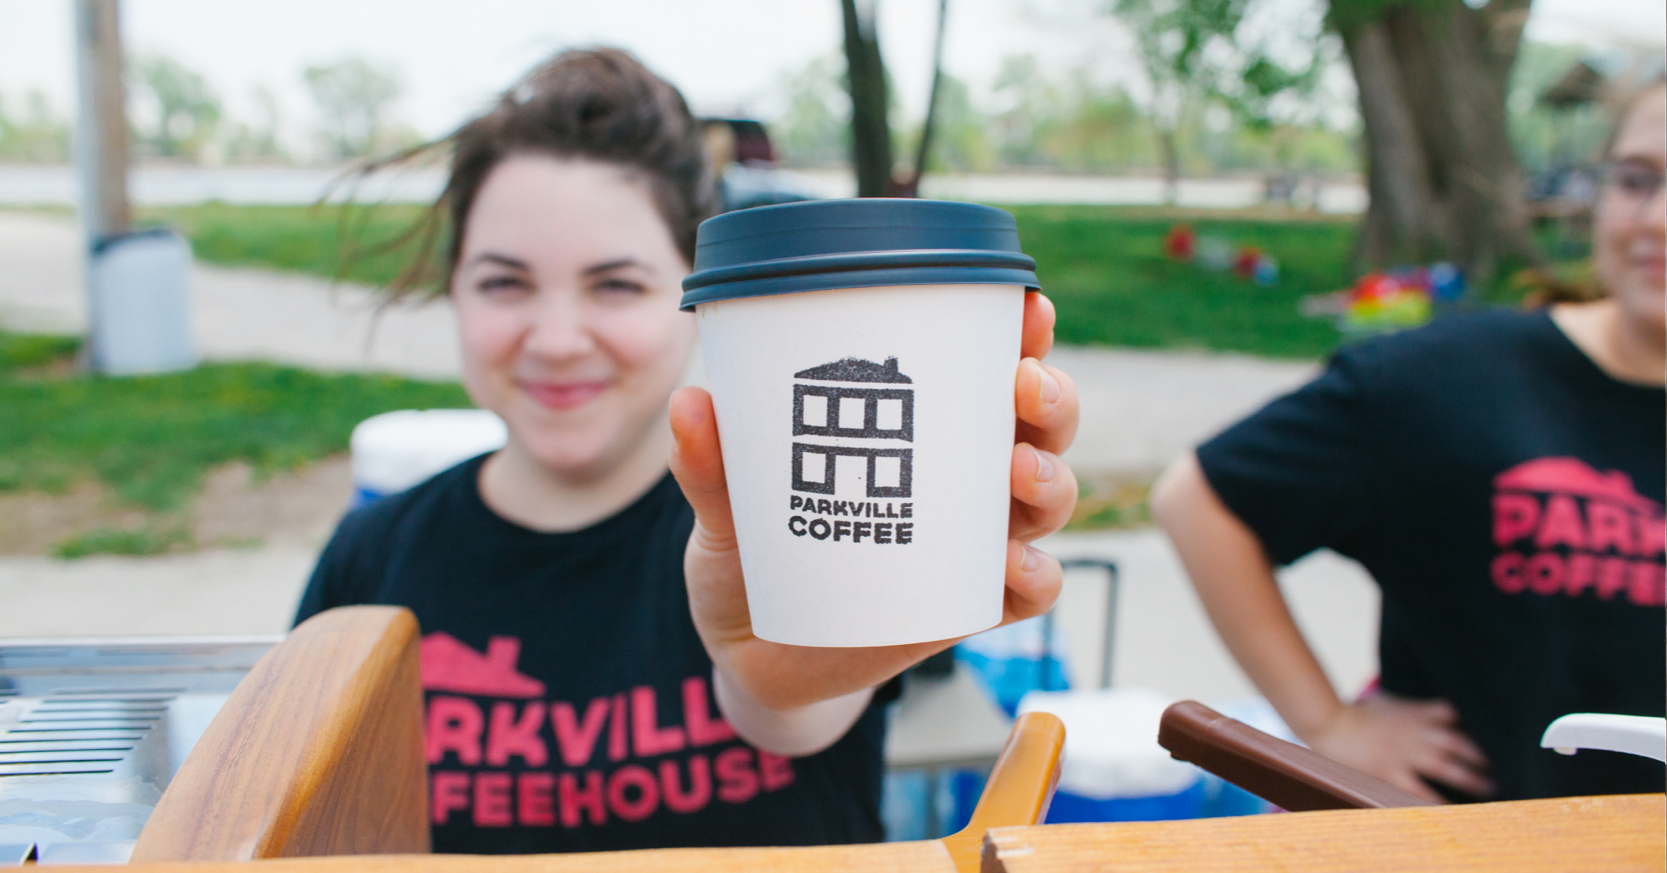 Parkville Coffee, Parkville Missouri   Local Cafe, Wholesale Roasterie, Events and Catering